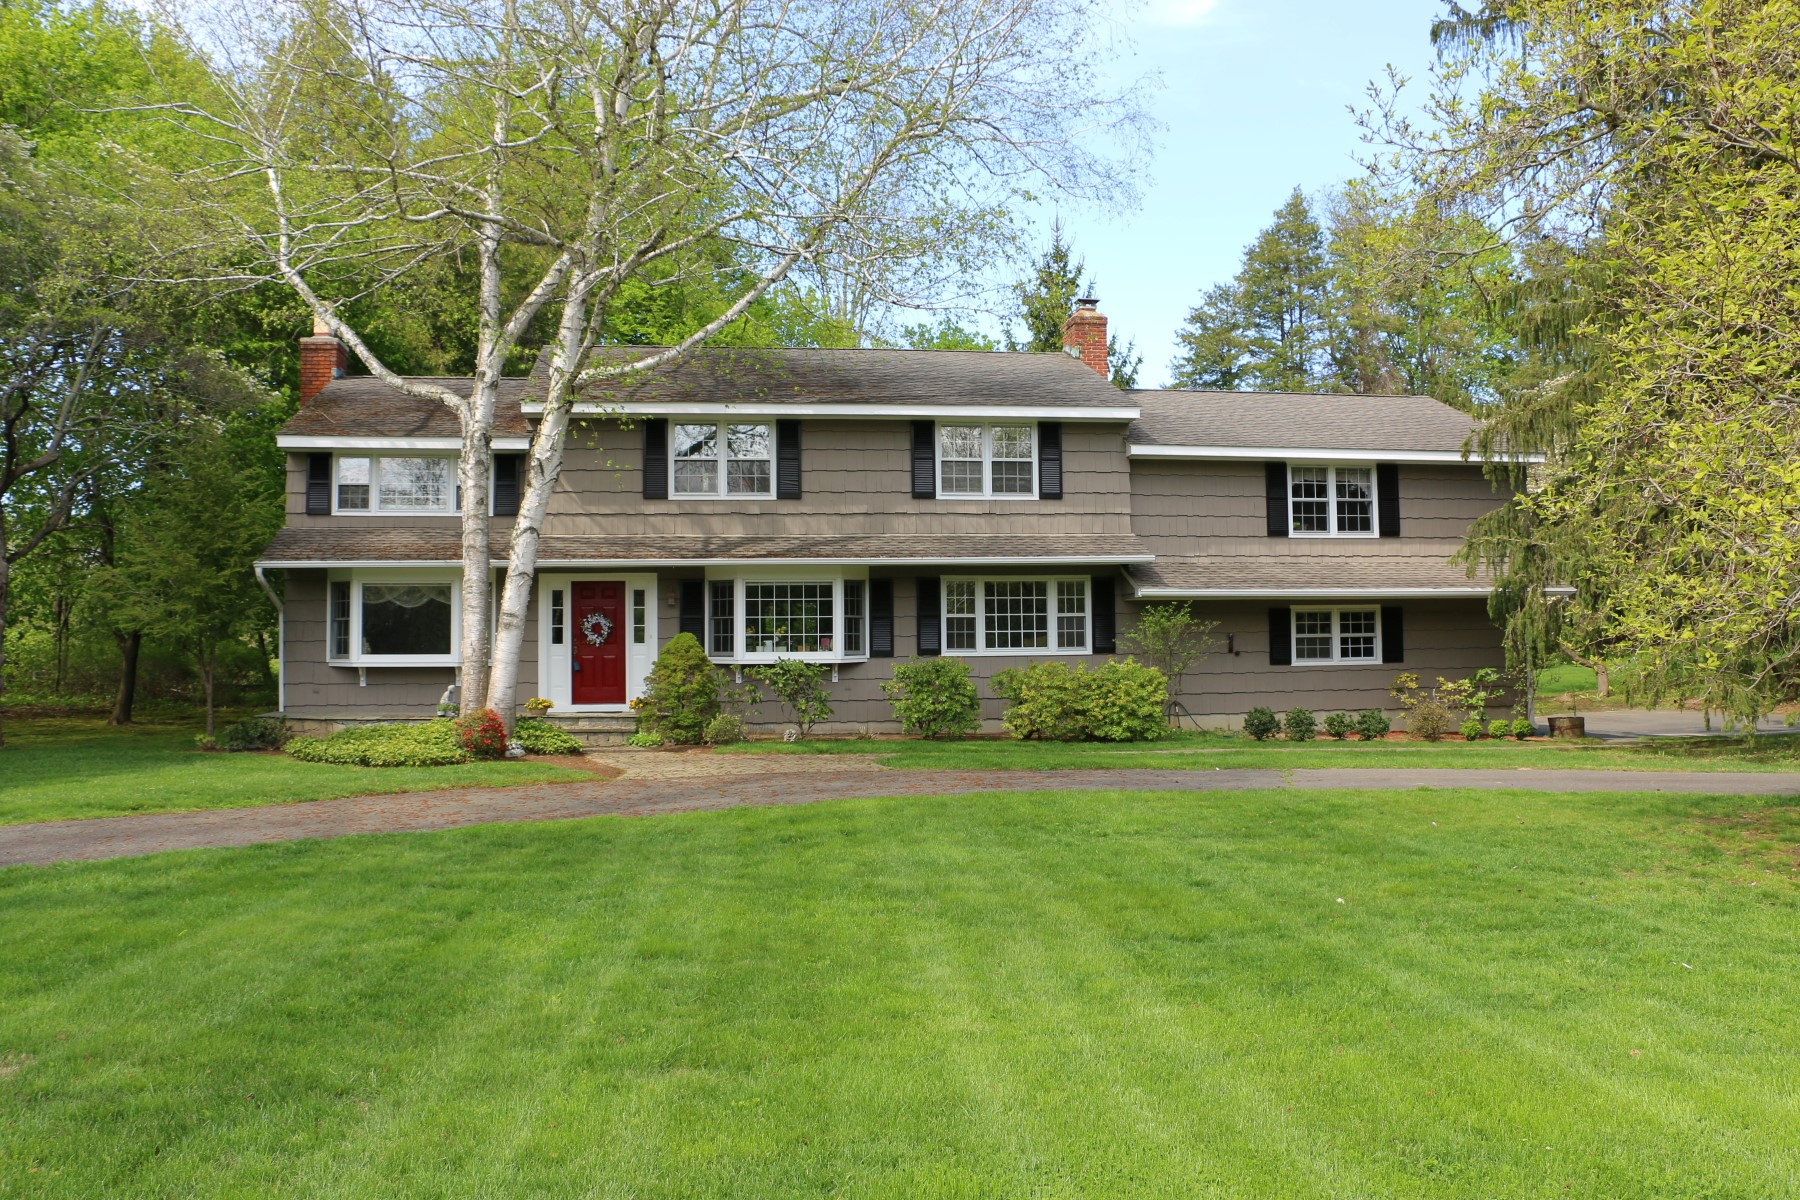 Vivienda unifamiliar por un Venta en Incredible Pride of Ownership 1 Mimosa Circle Ridgefield, Connecticut, 06877 Estados Unidos